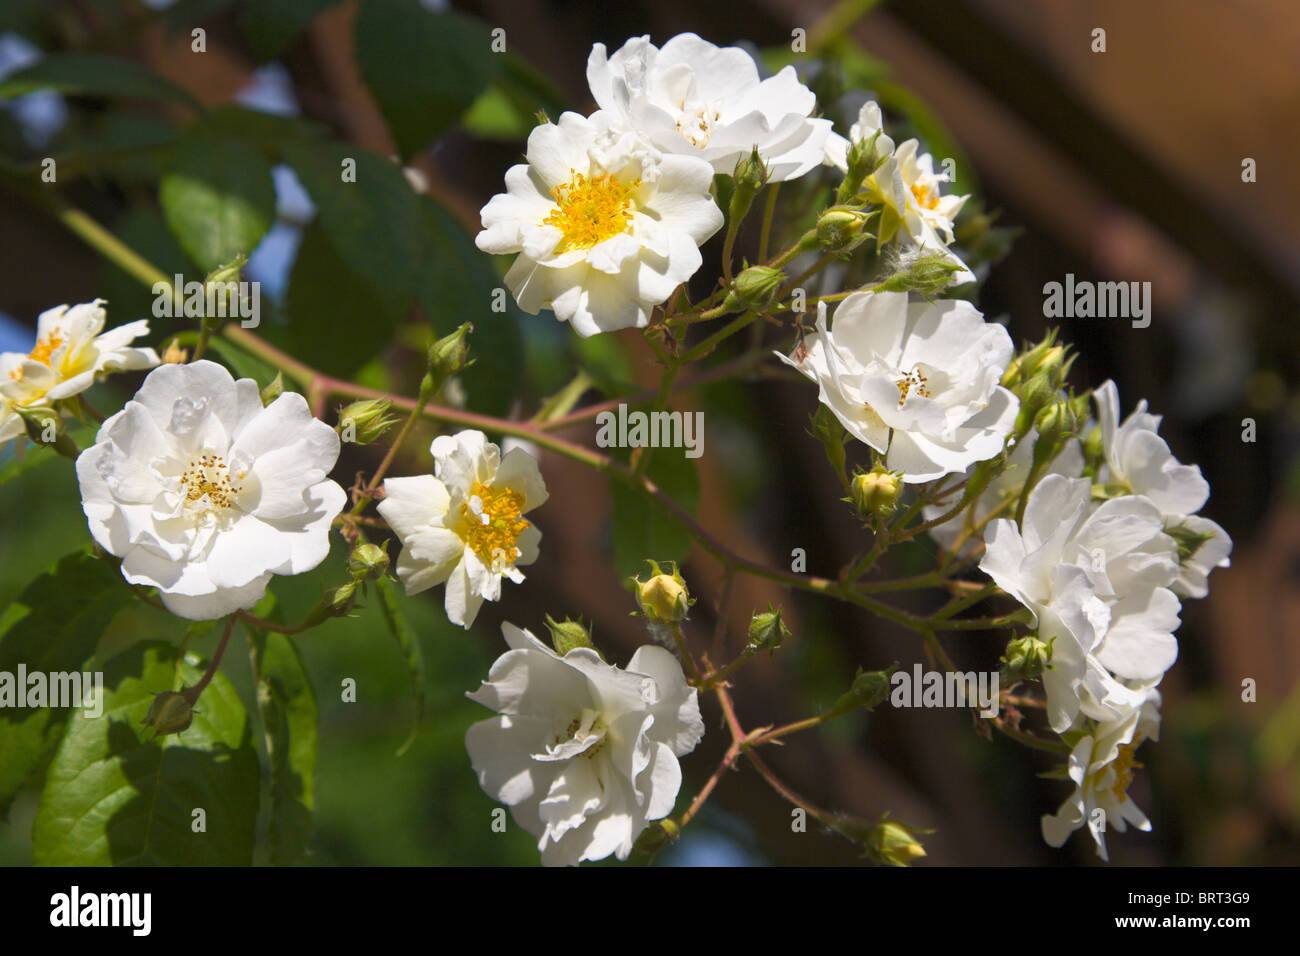 Rambling Rector, white rambling rose, England - Stock Image